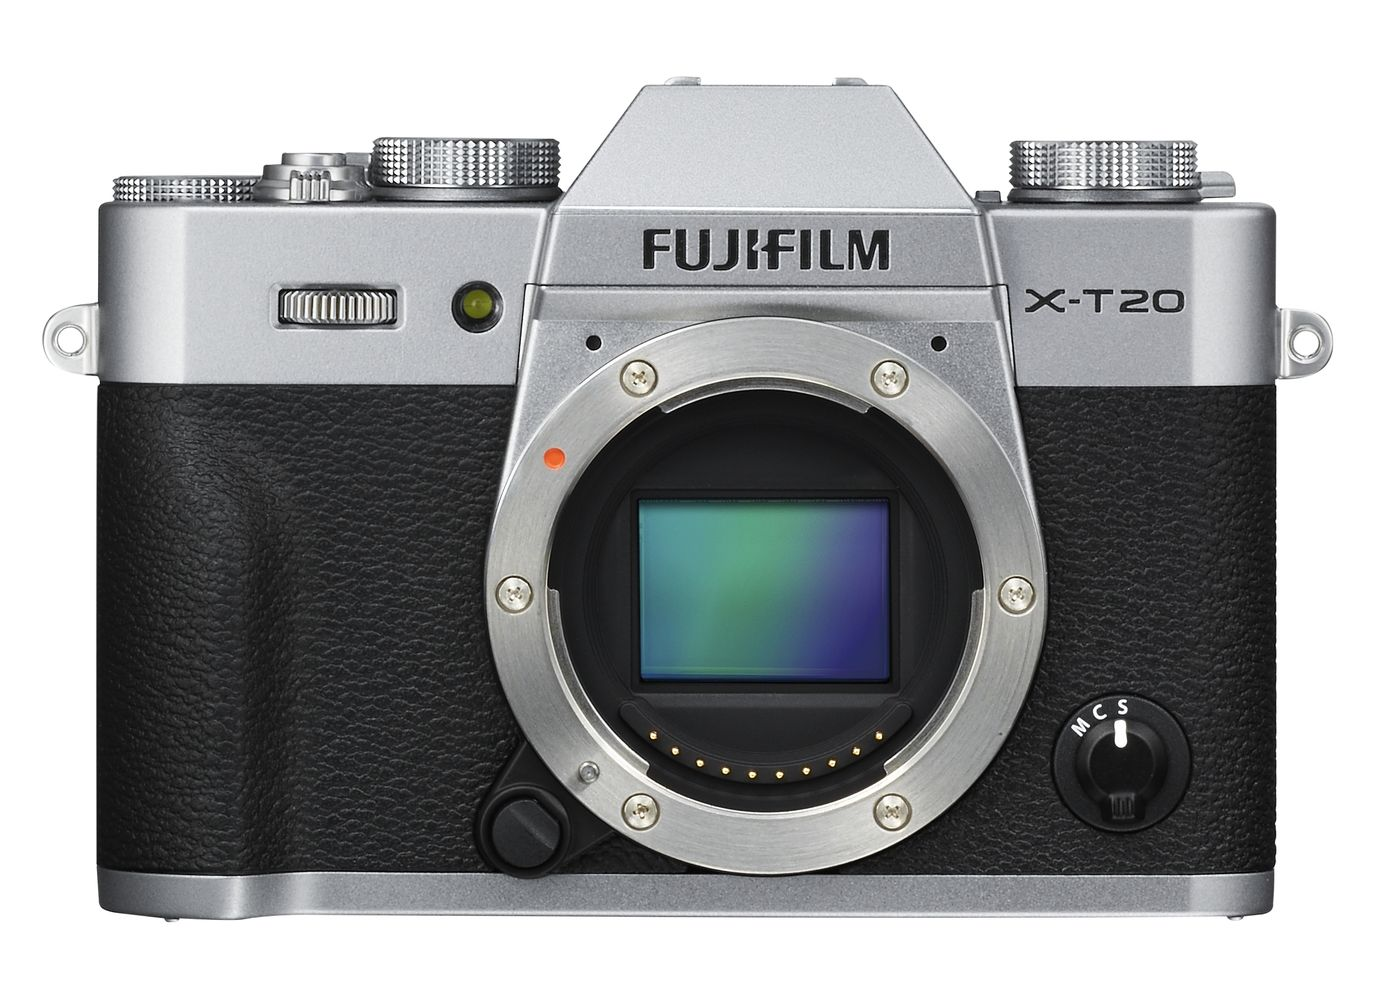 Fujifilm upgrades the sensors in its excellent midrange X-series cameras